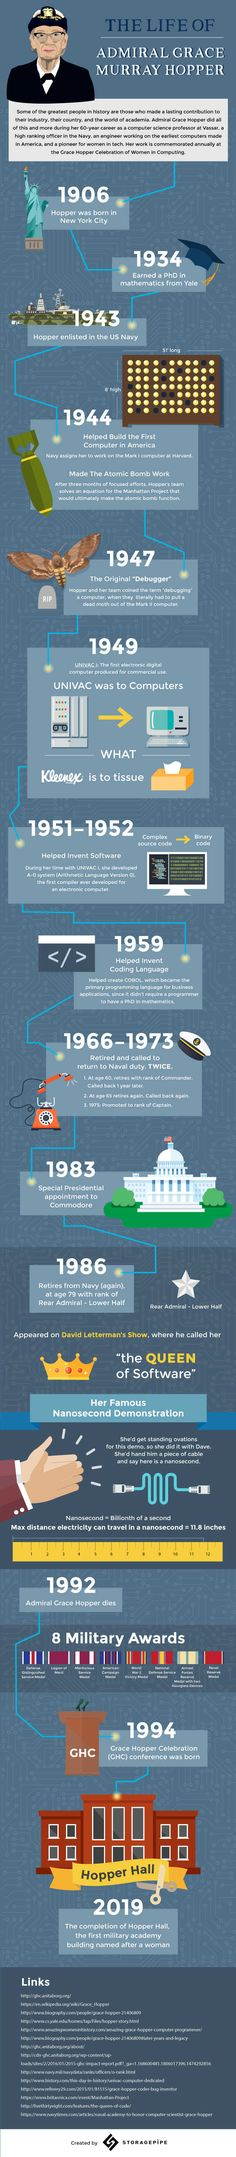 www.i-programmer.info news 82-heritage 10340-the-life-and-times-of-admiral-grace-hopper-infographic.html